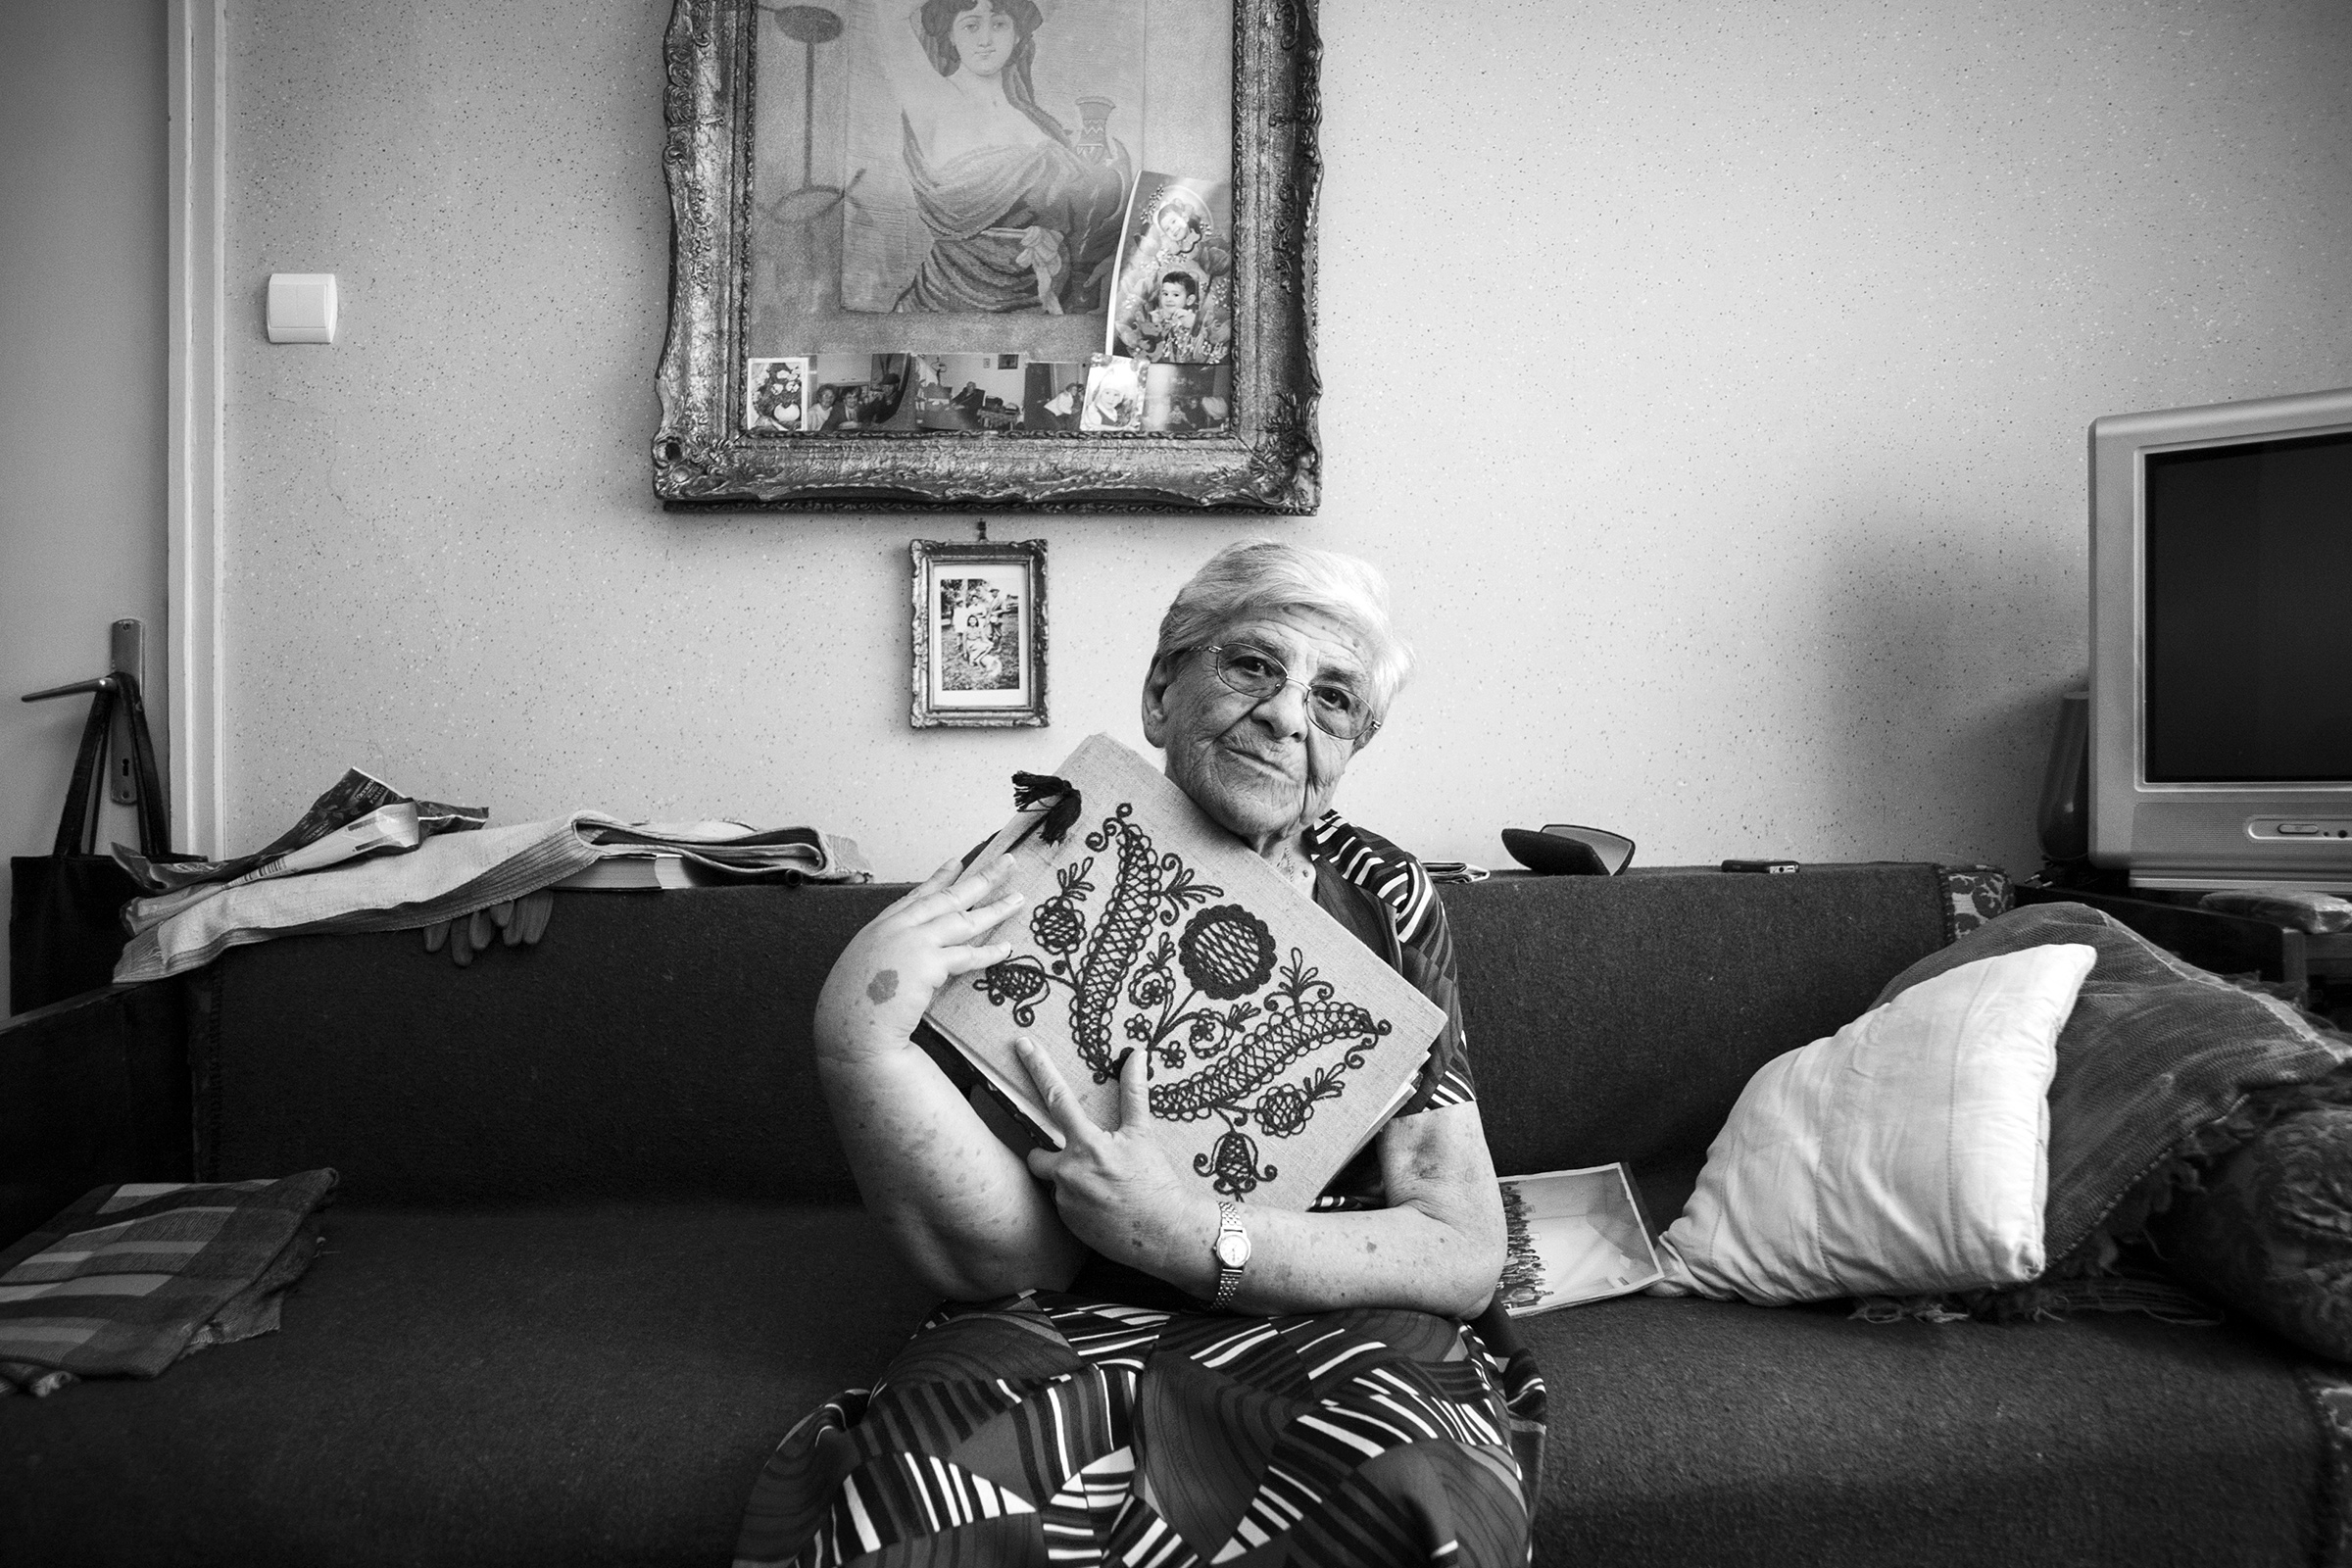 "Auschwitz survivor, Iudit Varadi, 87, poses for a portrait with her family photo album at her home in Oradea, Romania on August 18, 2013. ""My brother and mother died in the camps. Altogether, I lost around eighty members of my extended family in the Holocaust, so when I returned home I was alone. I had to start my life all over."" Mrs. Varadi passed away shortly after her portrait. (Photo by Daniel Owen/GroundTruth)"